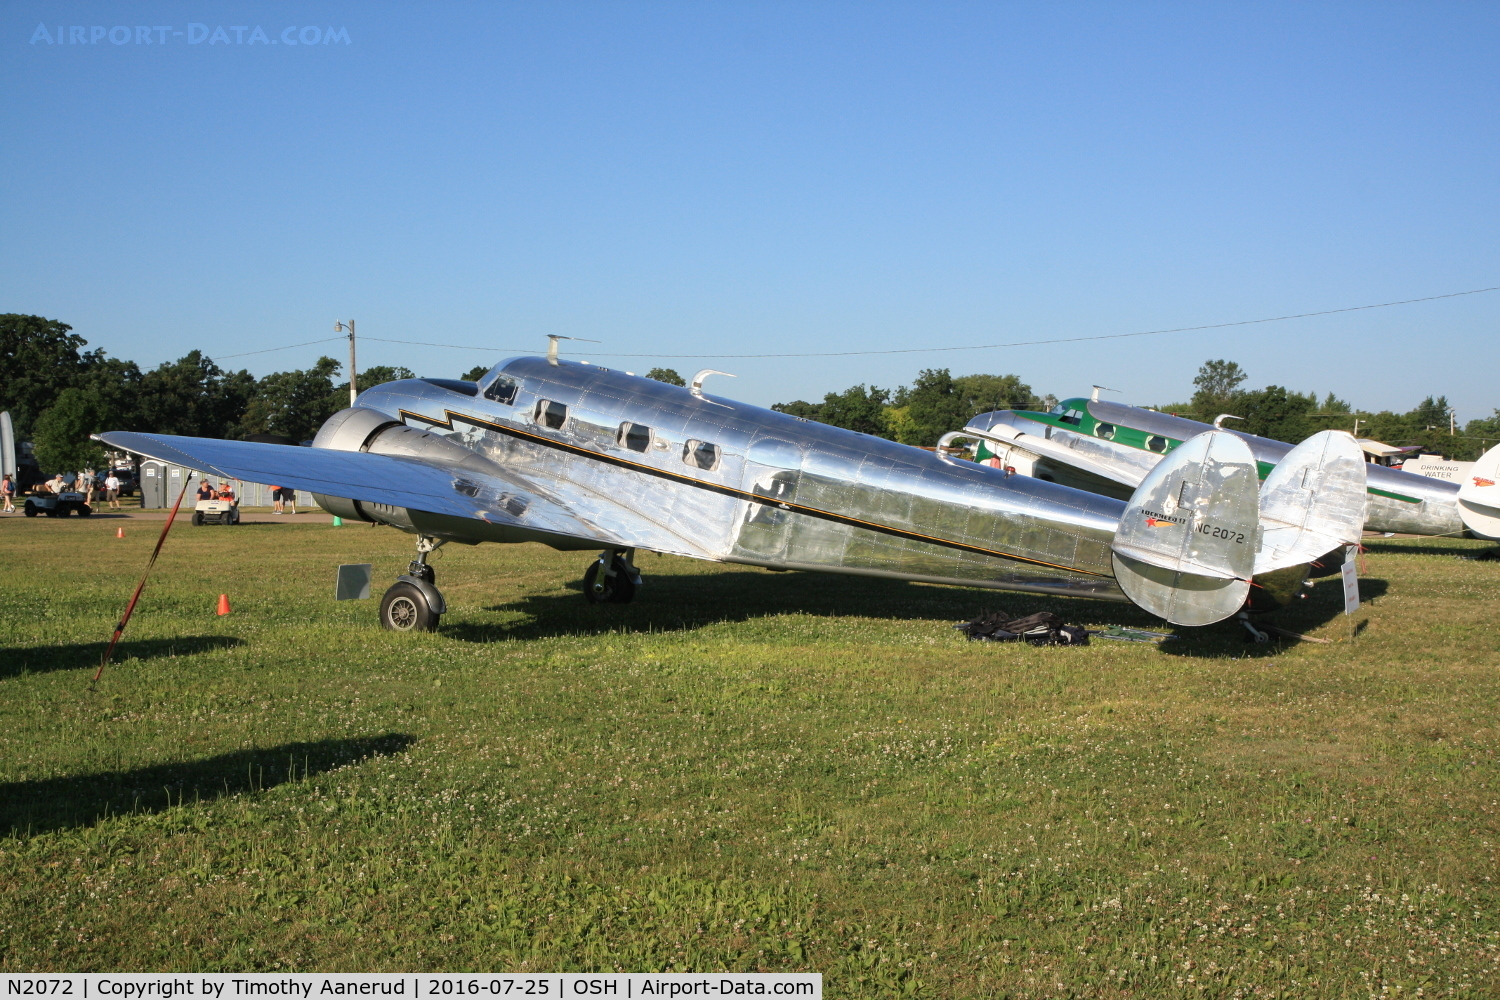 N2072, 1936 Lockheed 12A Electra Junior C/N 1208, 1936 Lockheed 12A, c/n: 1208